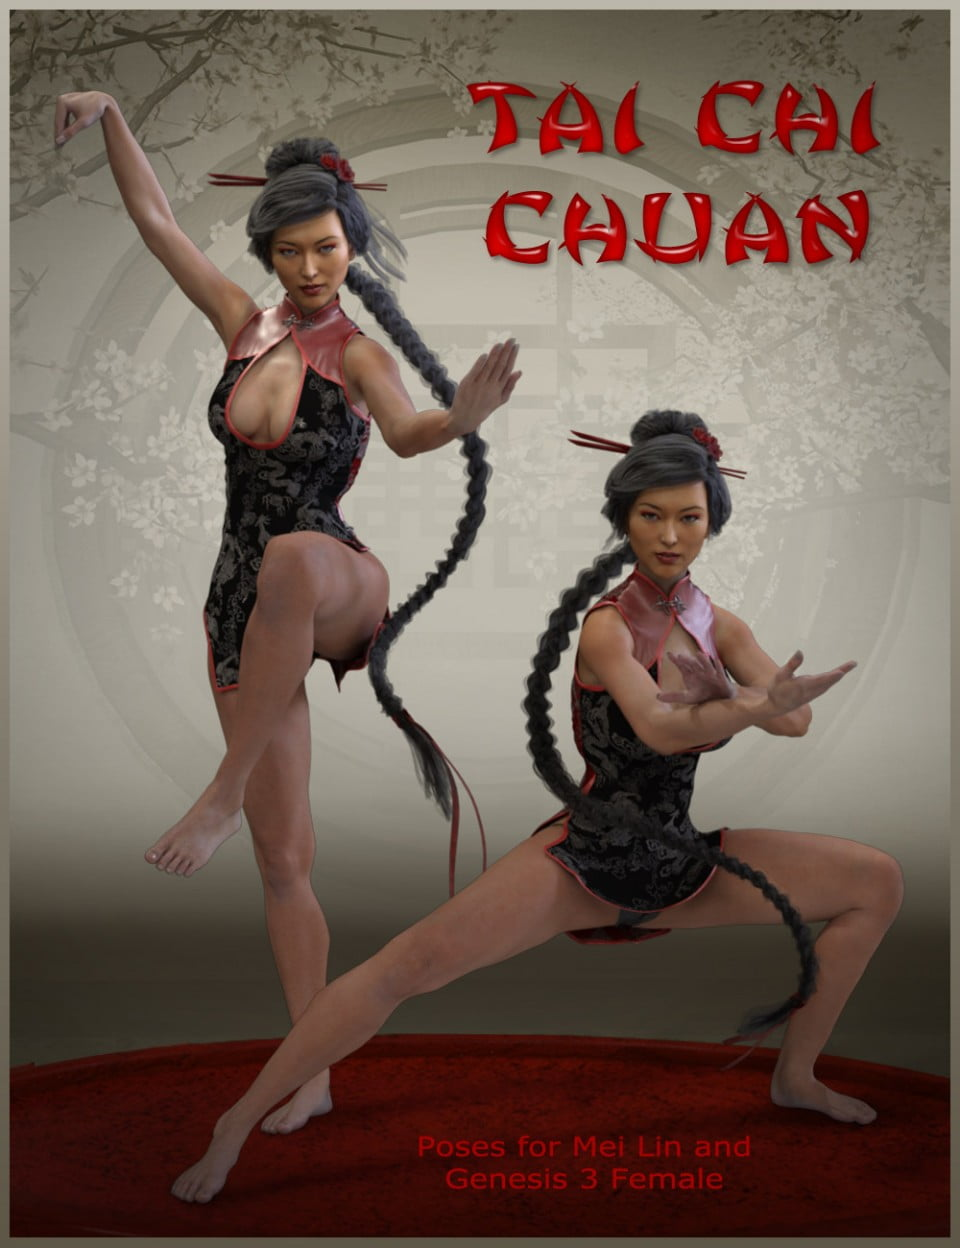 Tai Chi Chuan Poses for Mei Lin 7 and Genesis 3 Female